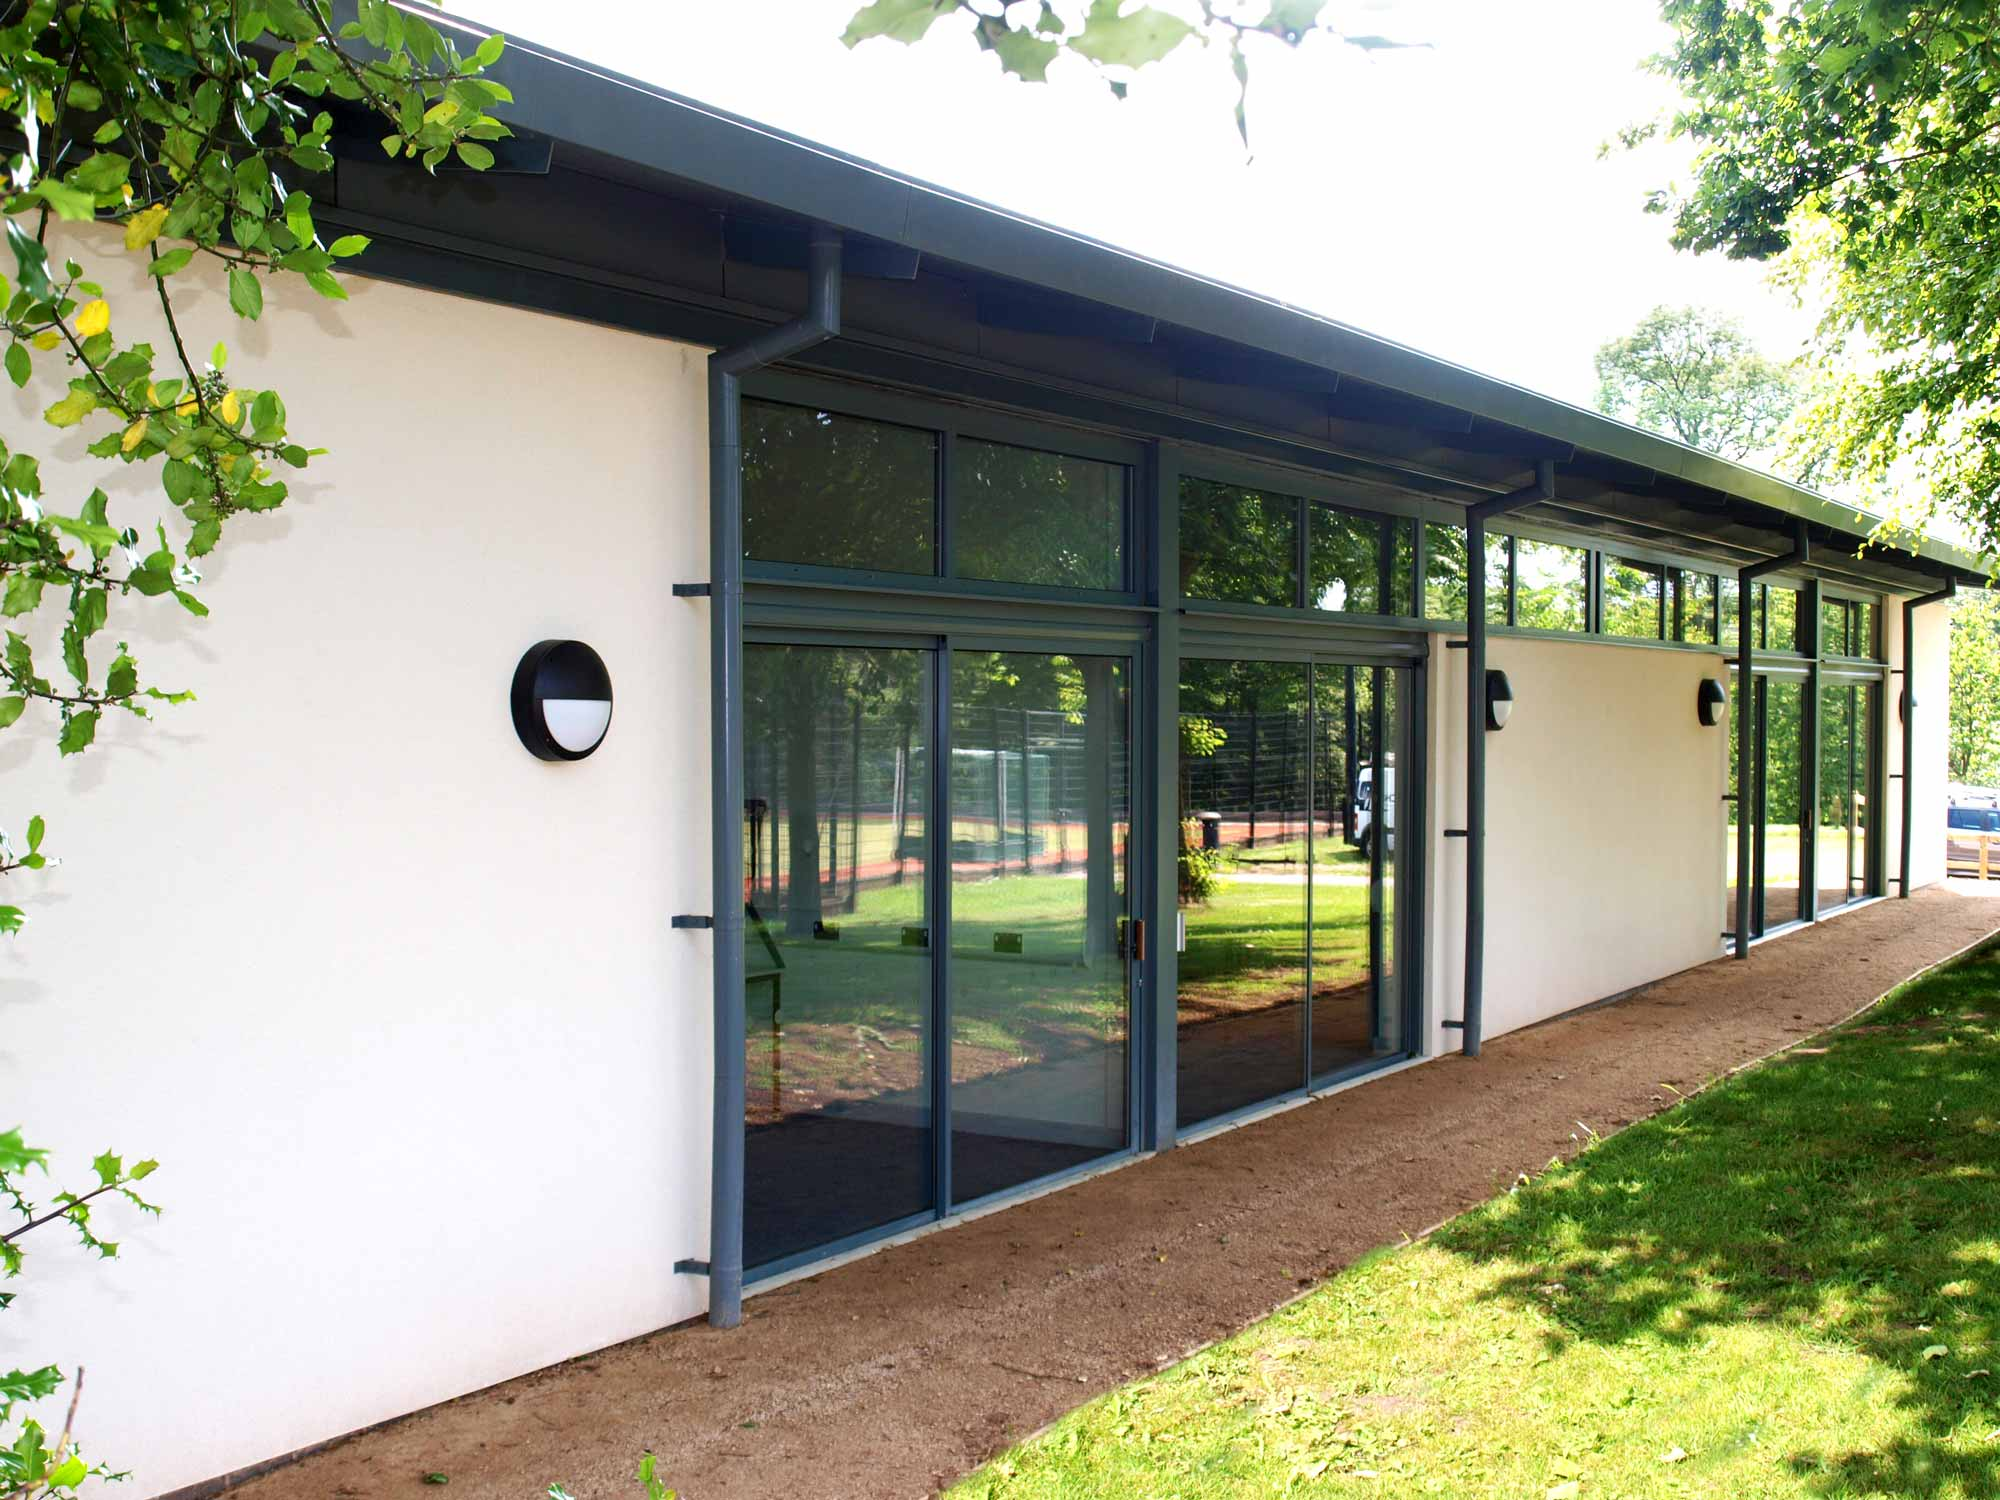 summer school and college classroom with aluminium windows and render finish